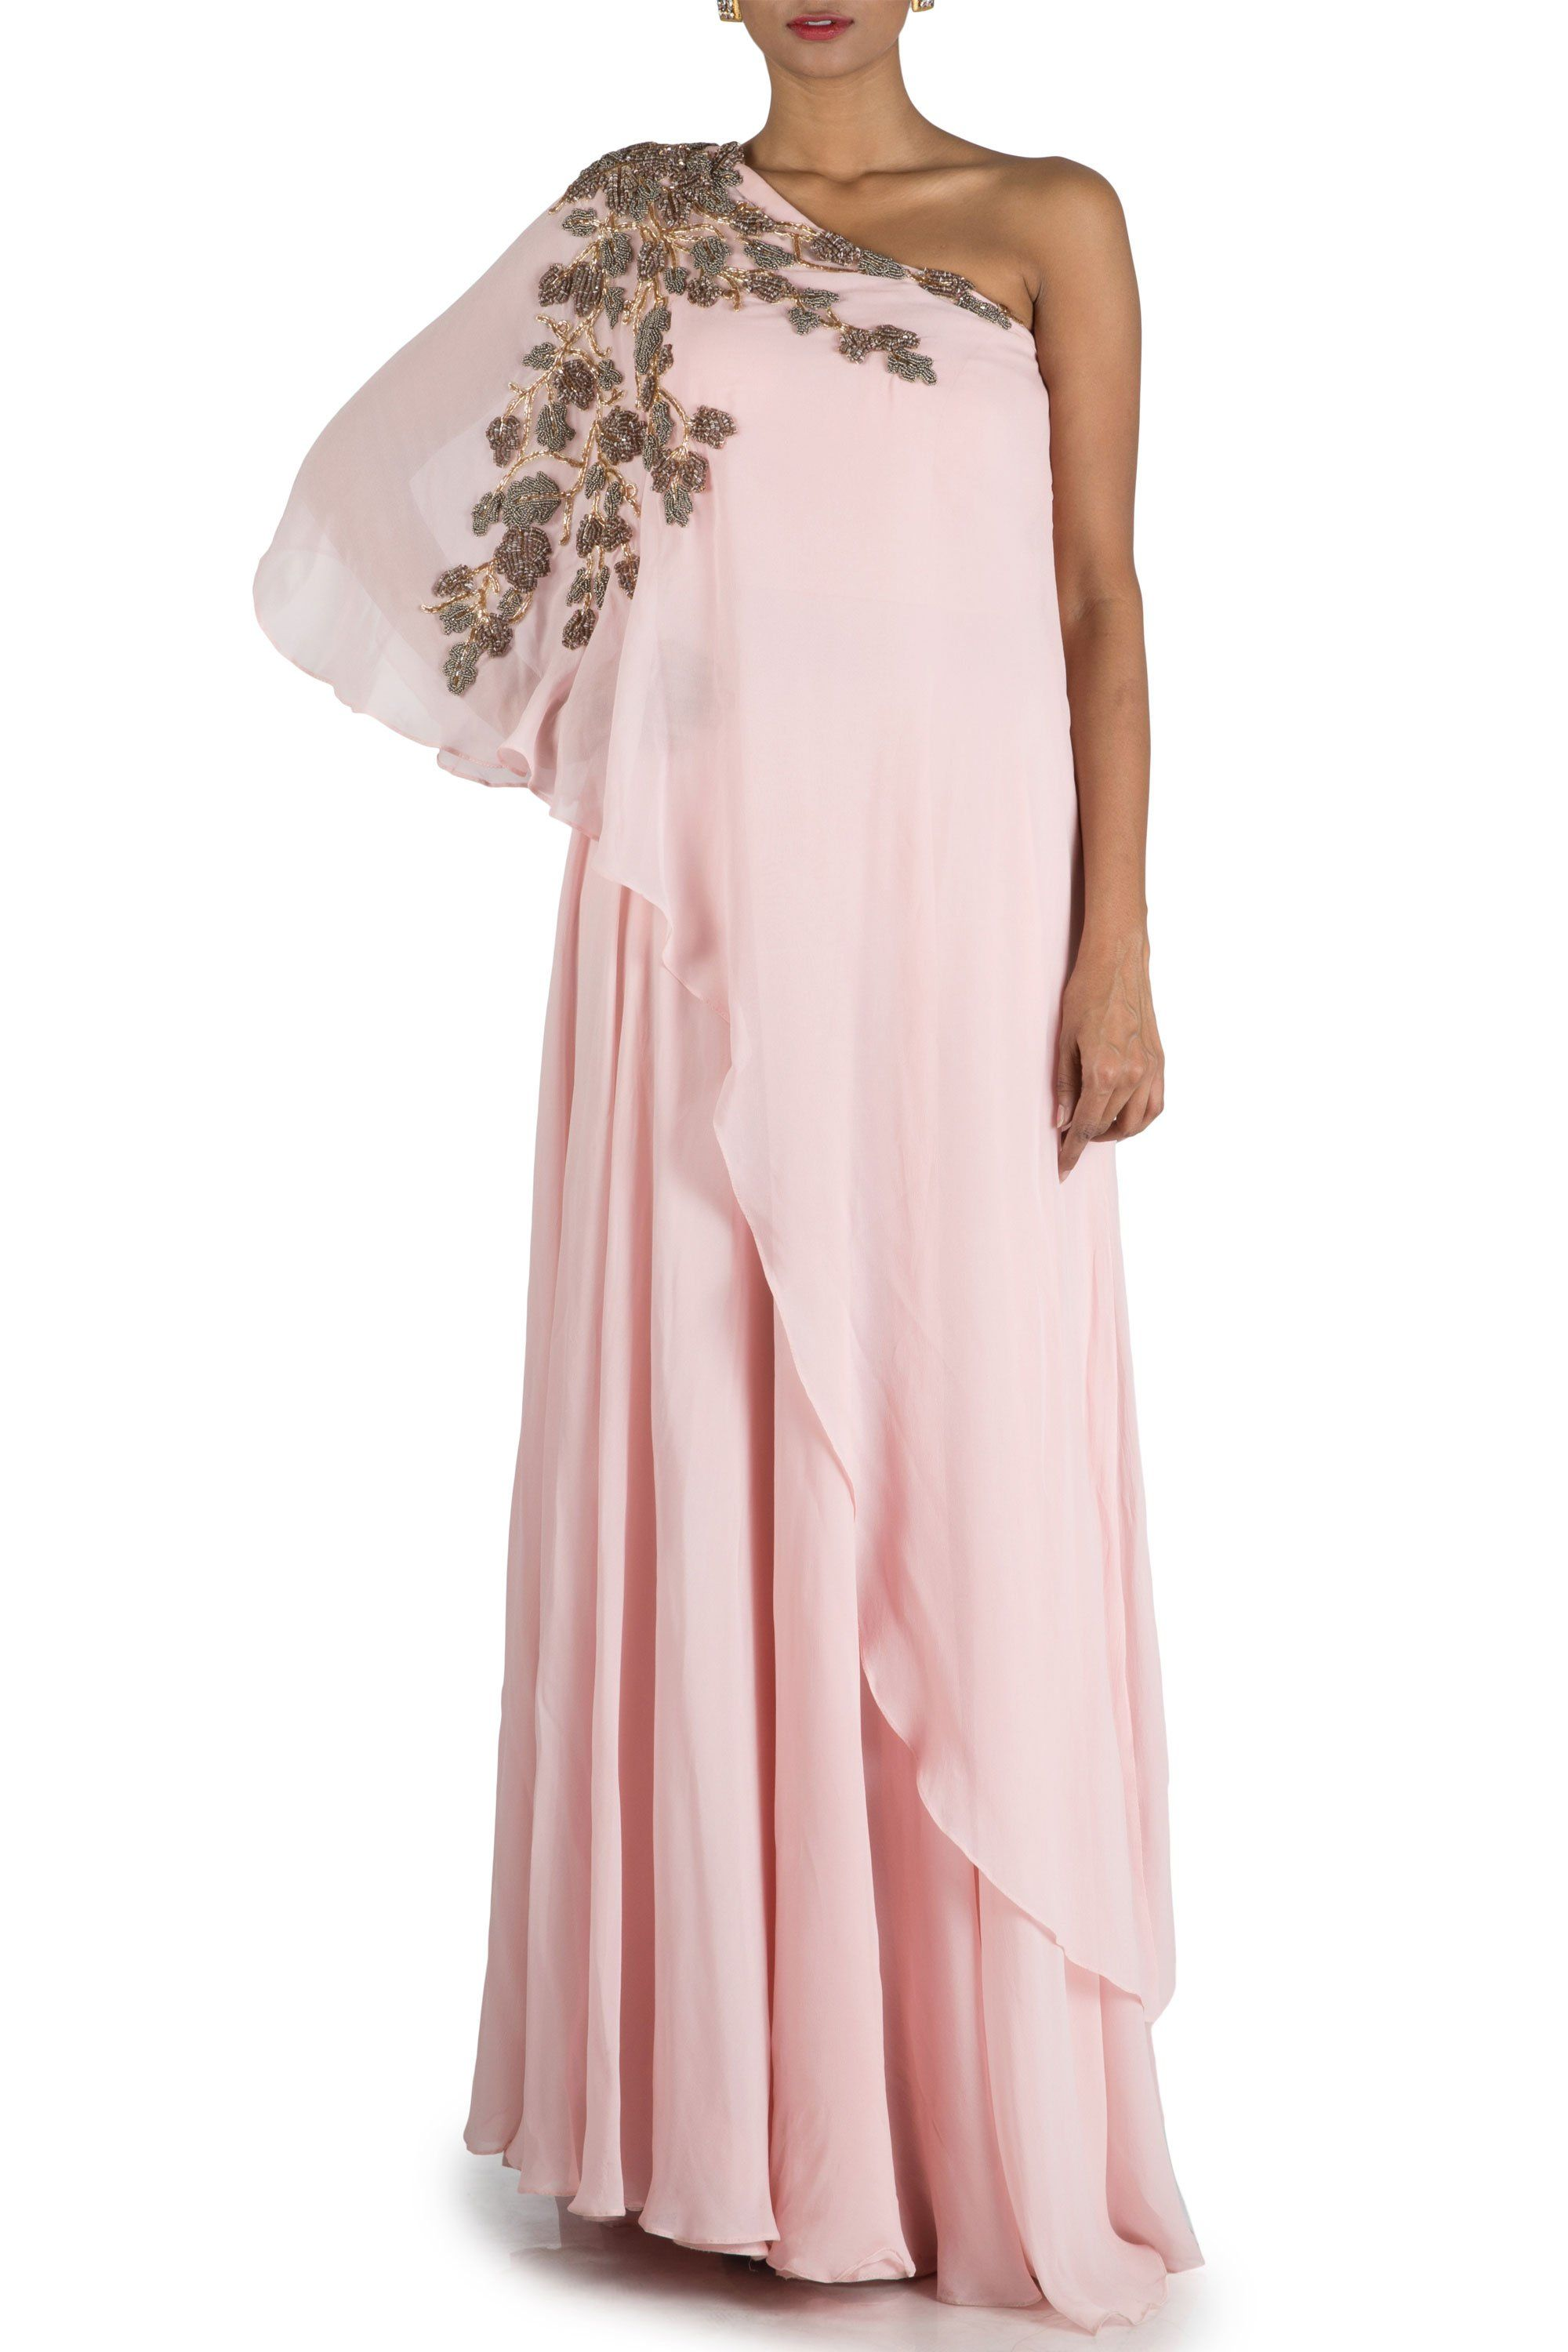 8c8328ac9e7 Powder Pink One sided Off Shoulder Cape Gown in 2019